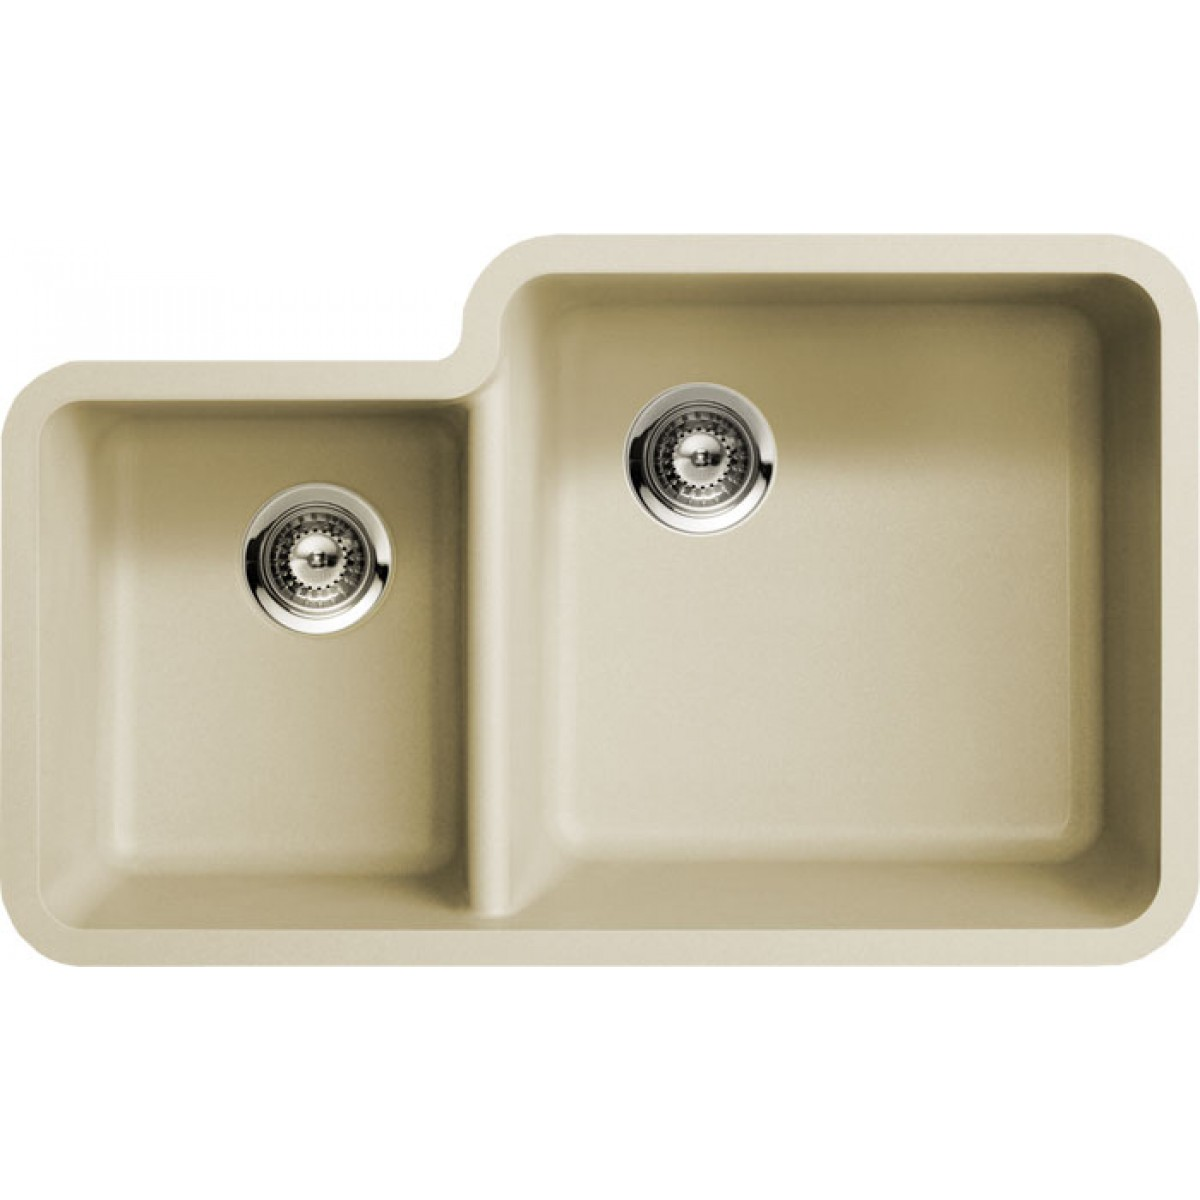 Granite Composite Undermount Kitchen Sinks Beige quartz composite 4060 double bowl undermount kitchen sink beige quartz composite 4060 double bowl undermount kitchen sink 33 x 20 1316 x 7 34 9 716 inch workwithnaturefo